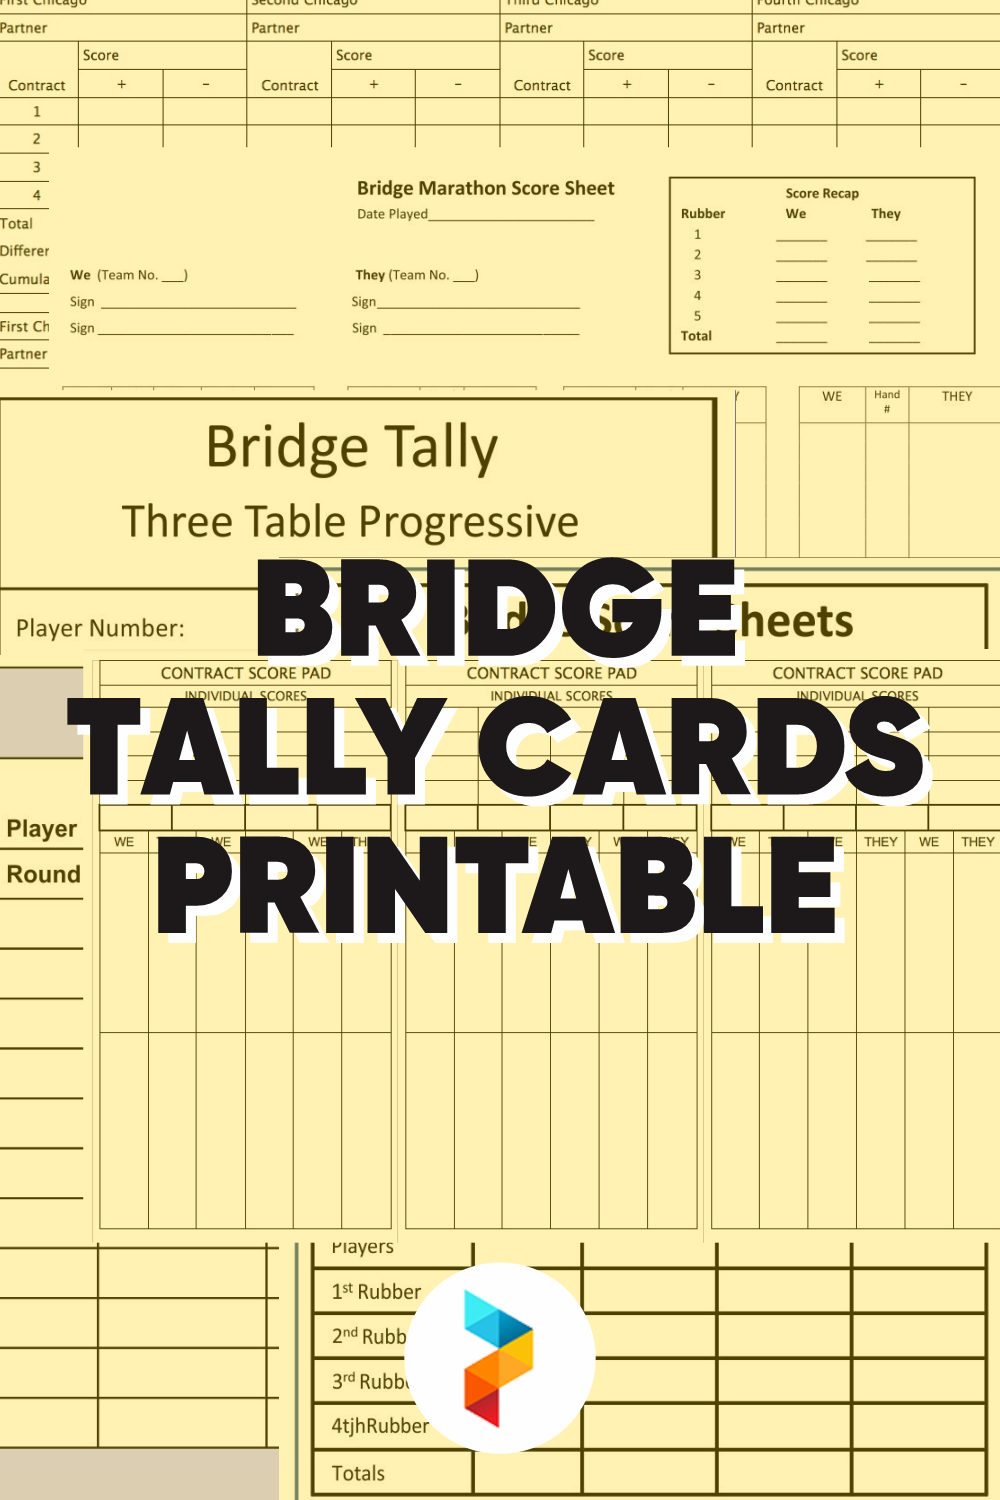 Bridge Tally Cards Printable